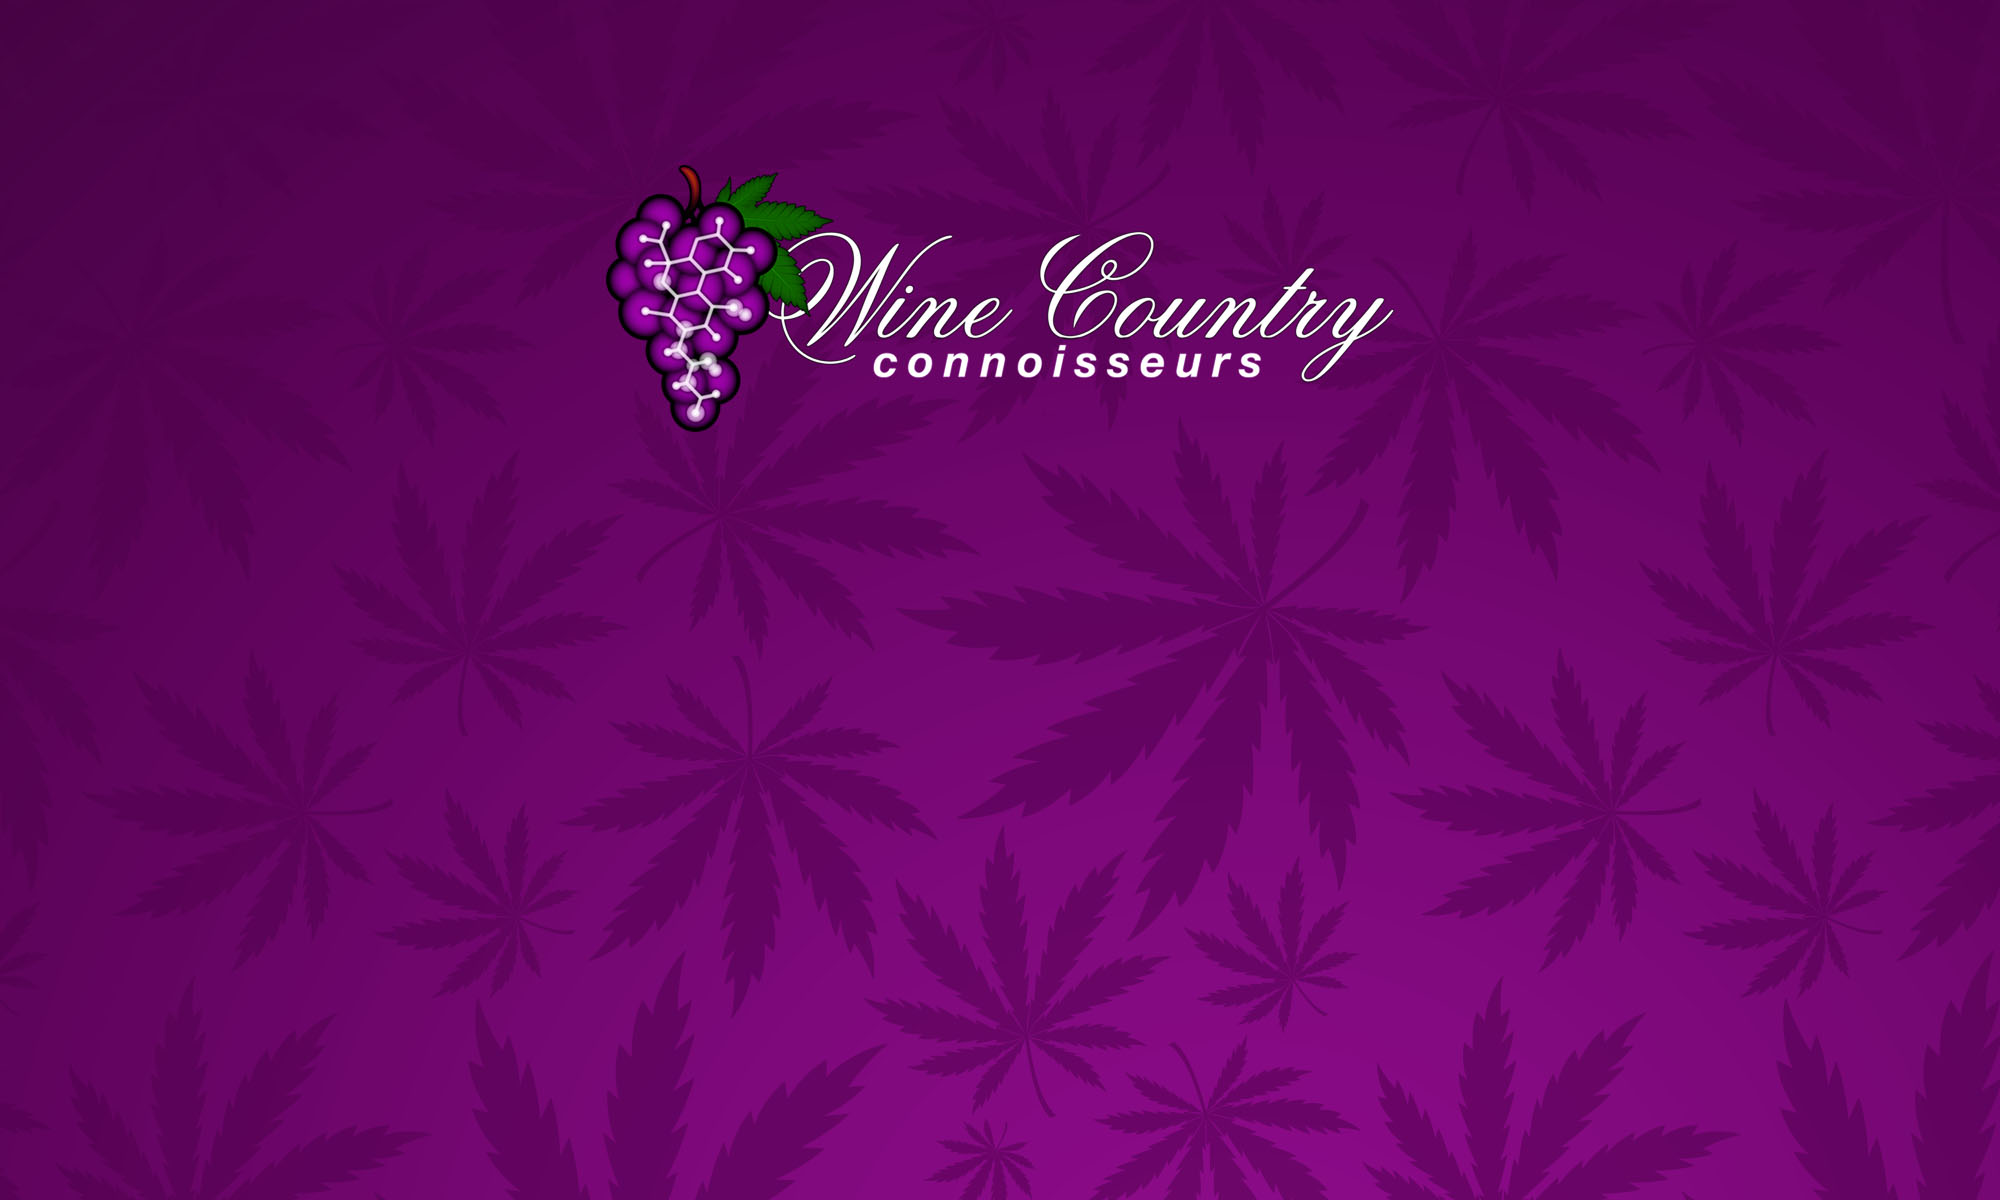 Wine Country Connoisseurs